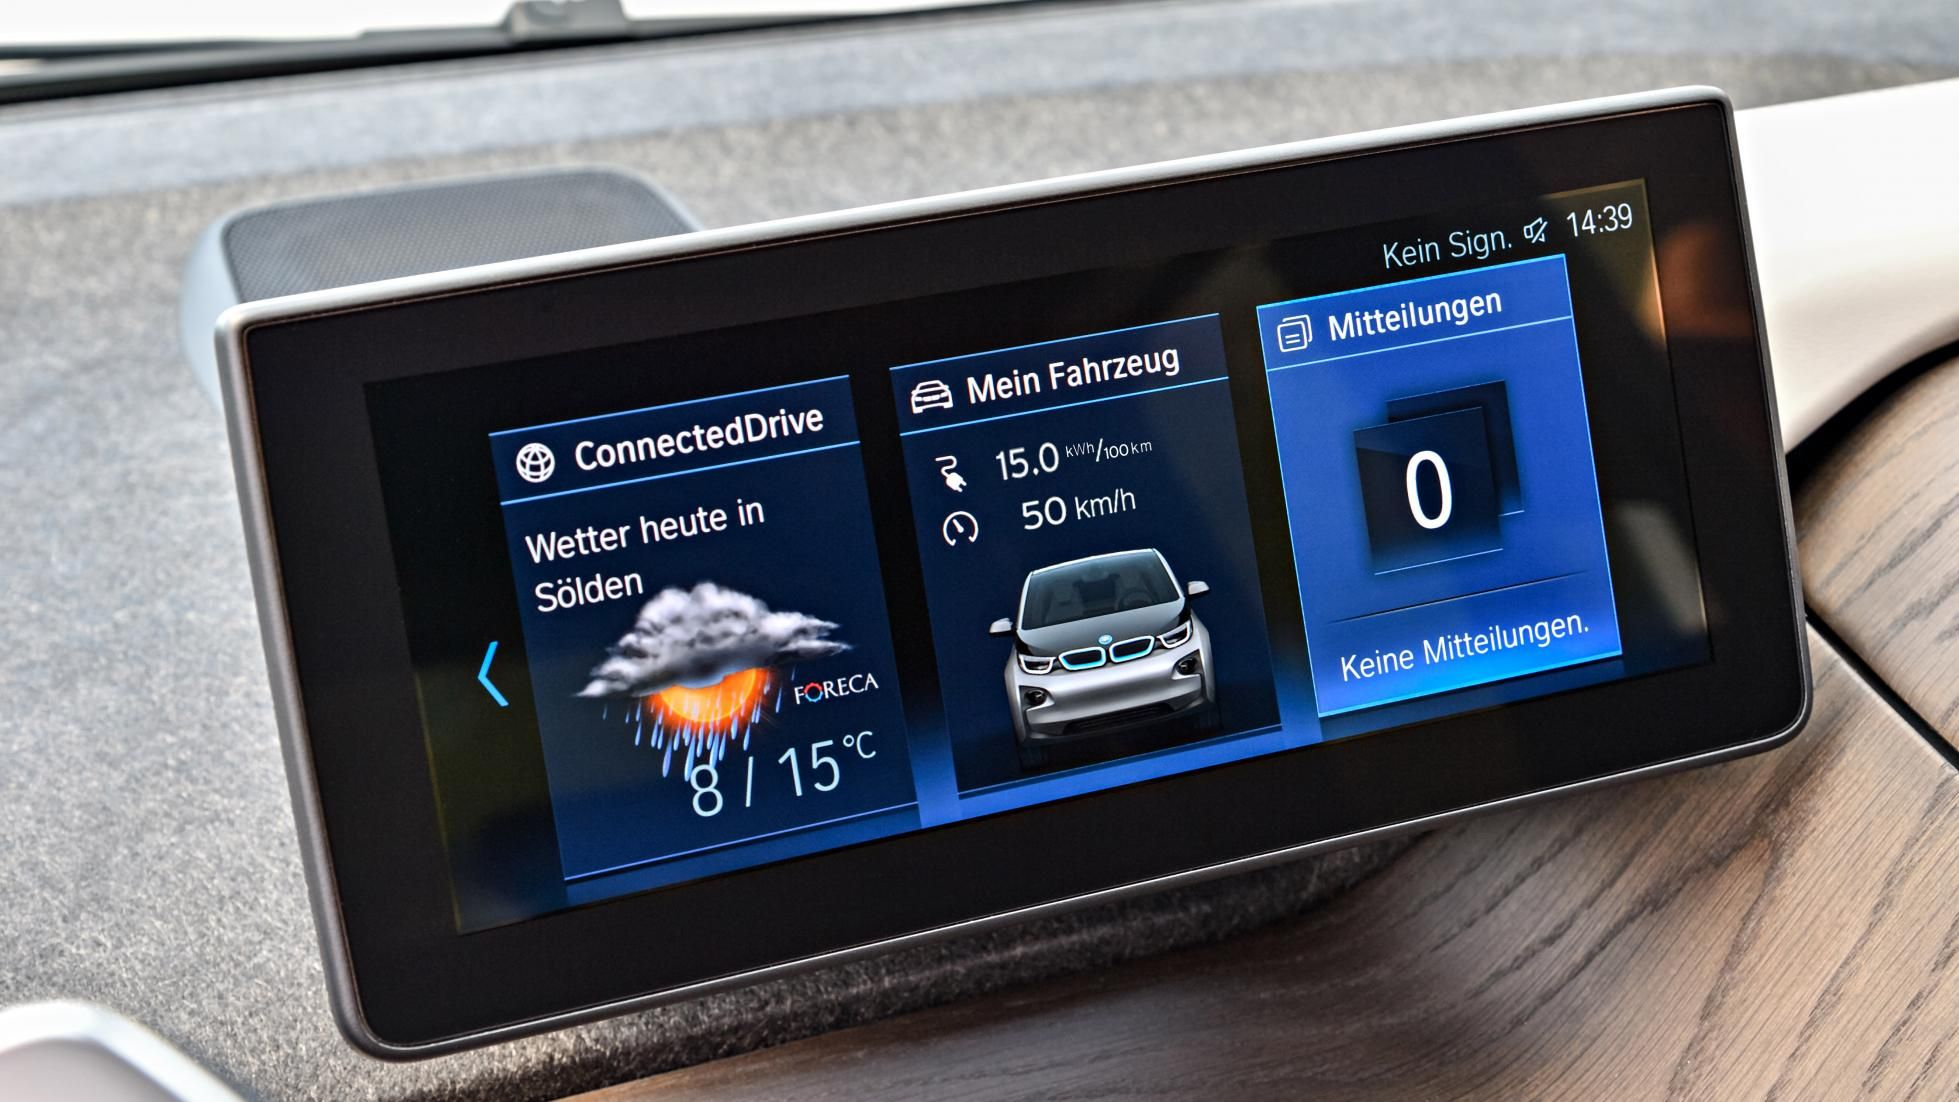 Bmw i3 with images